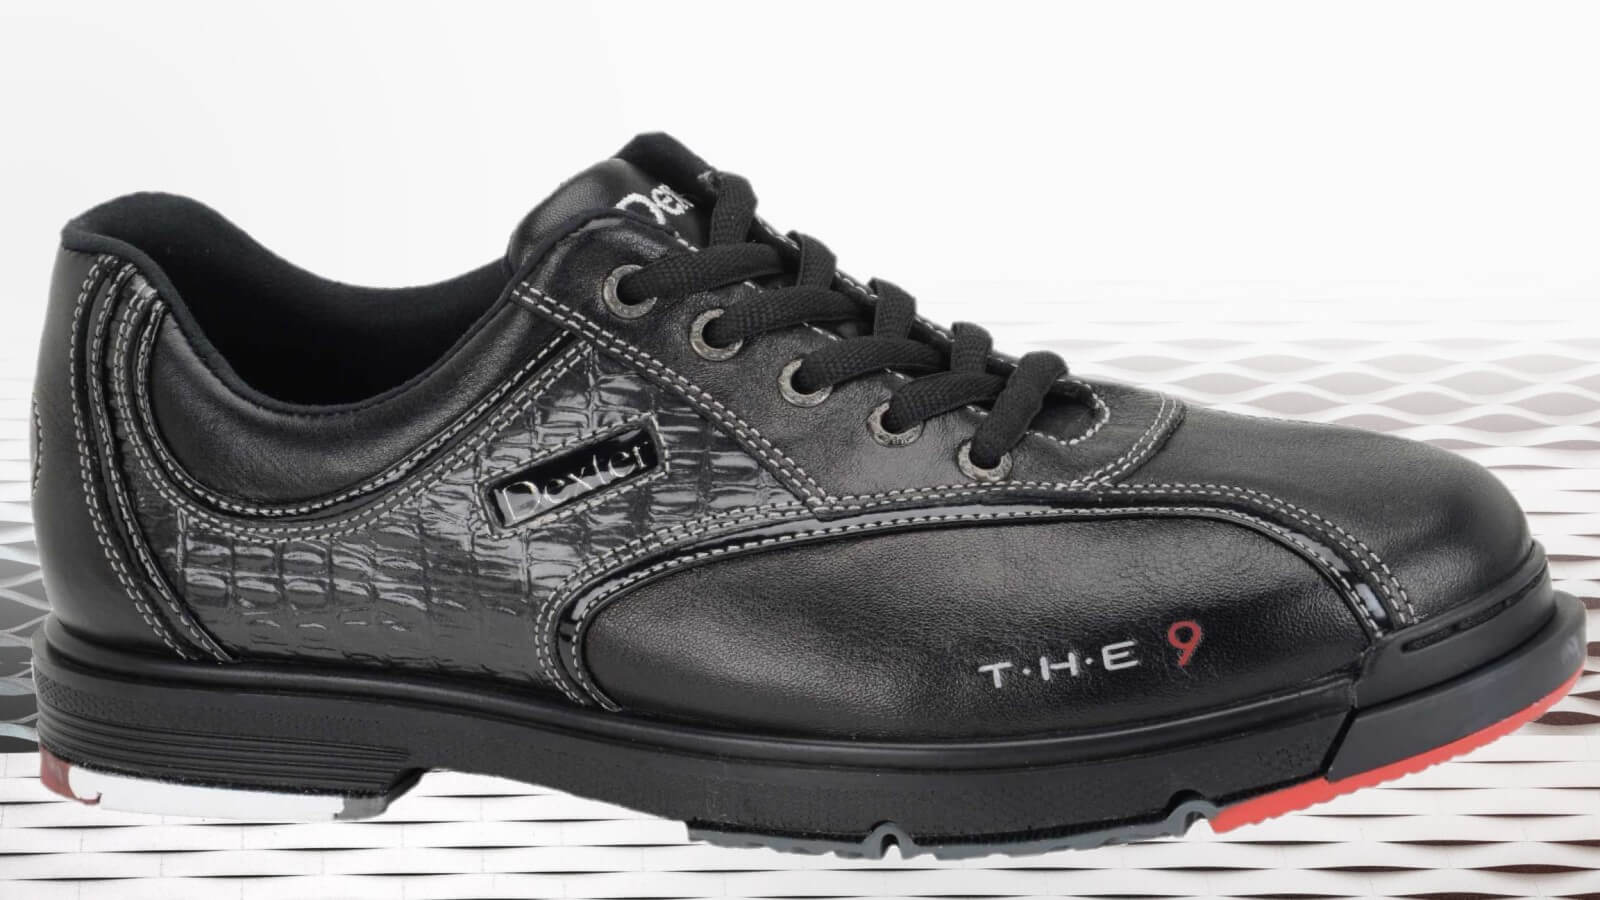 Black and red Dexter THE 9 bowling shoe